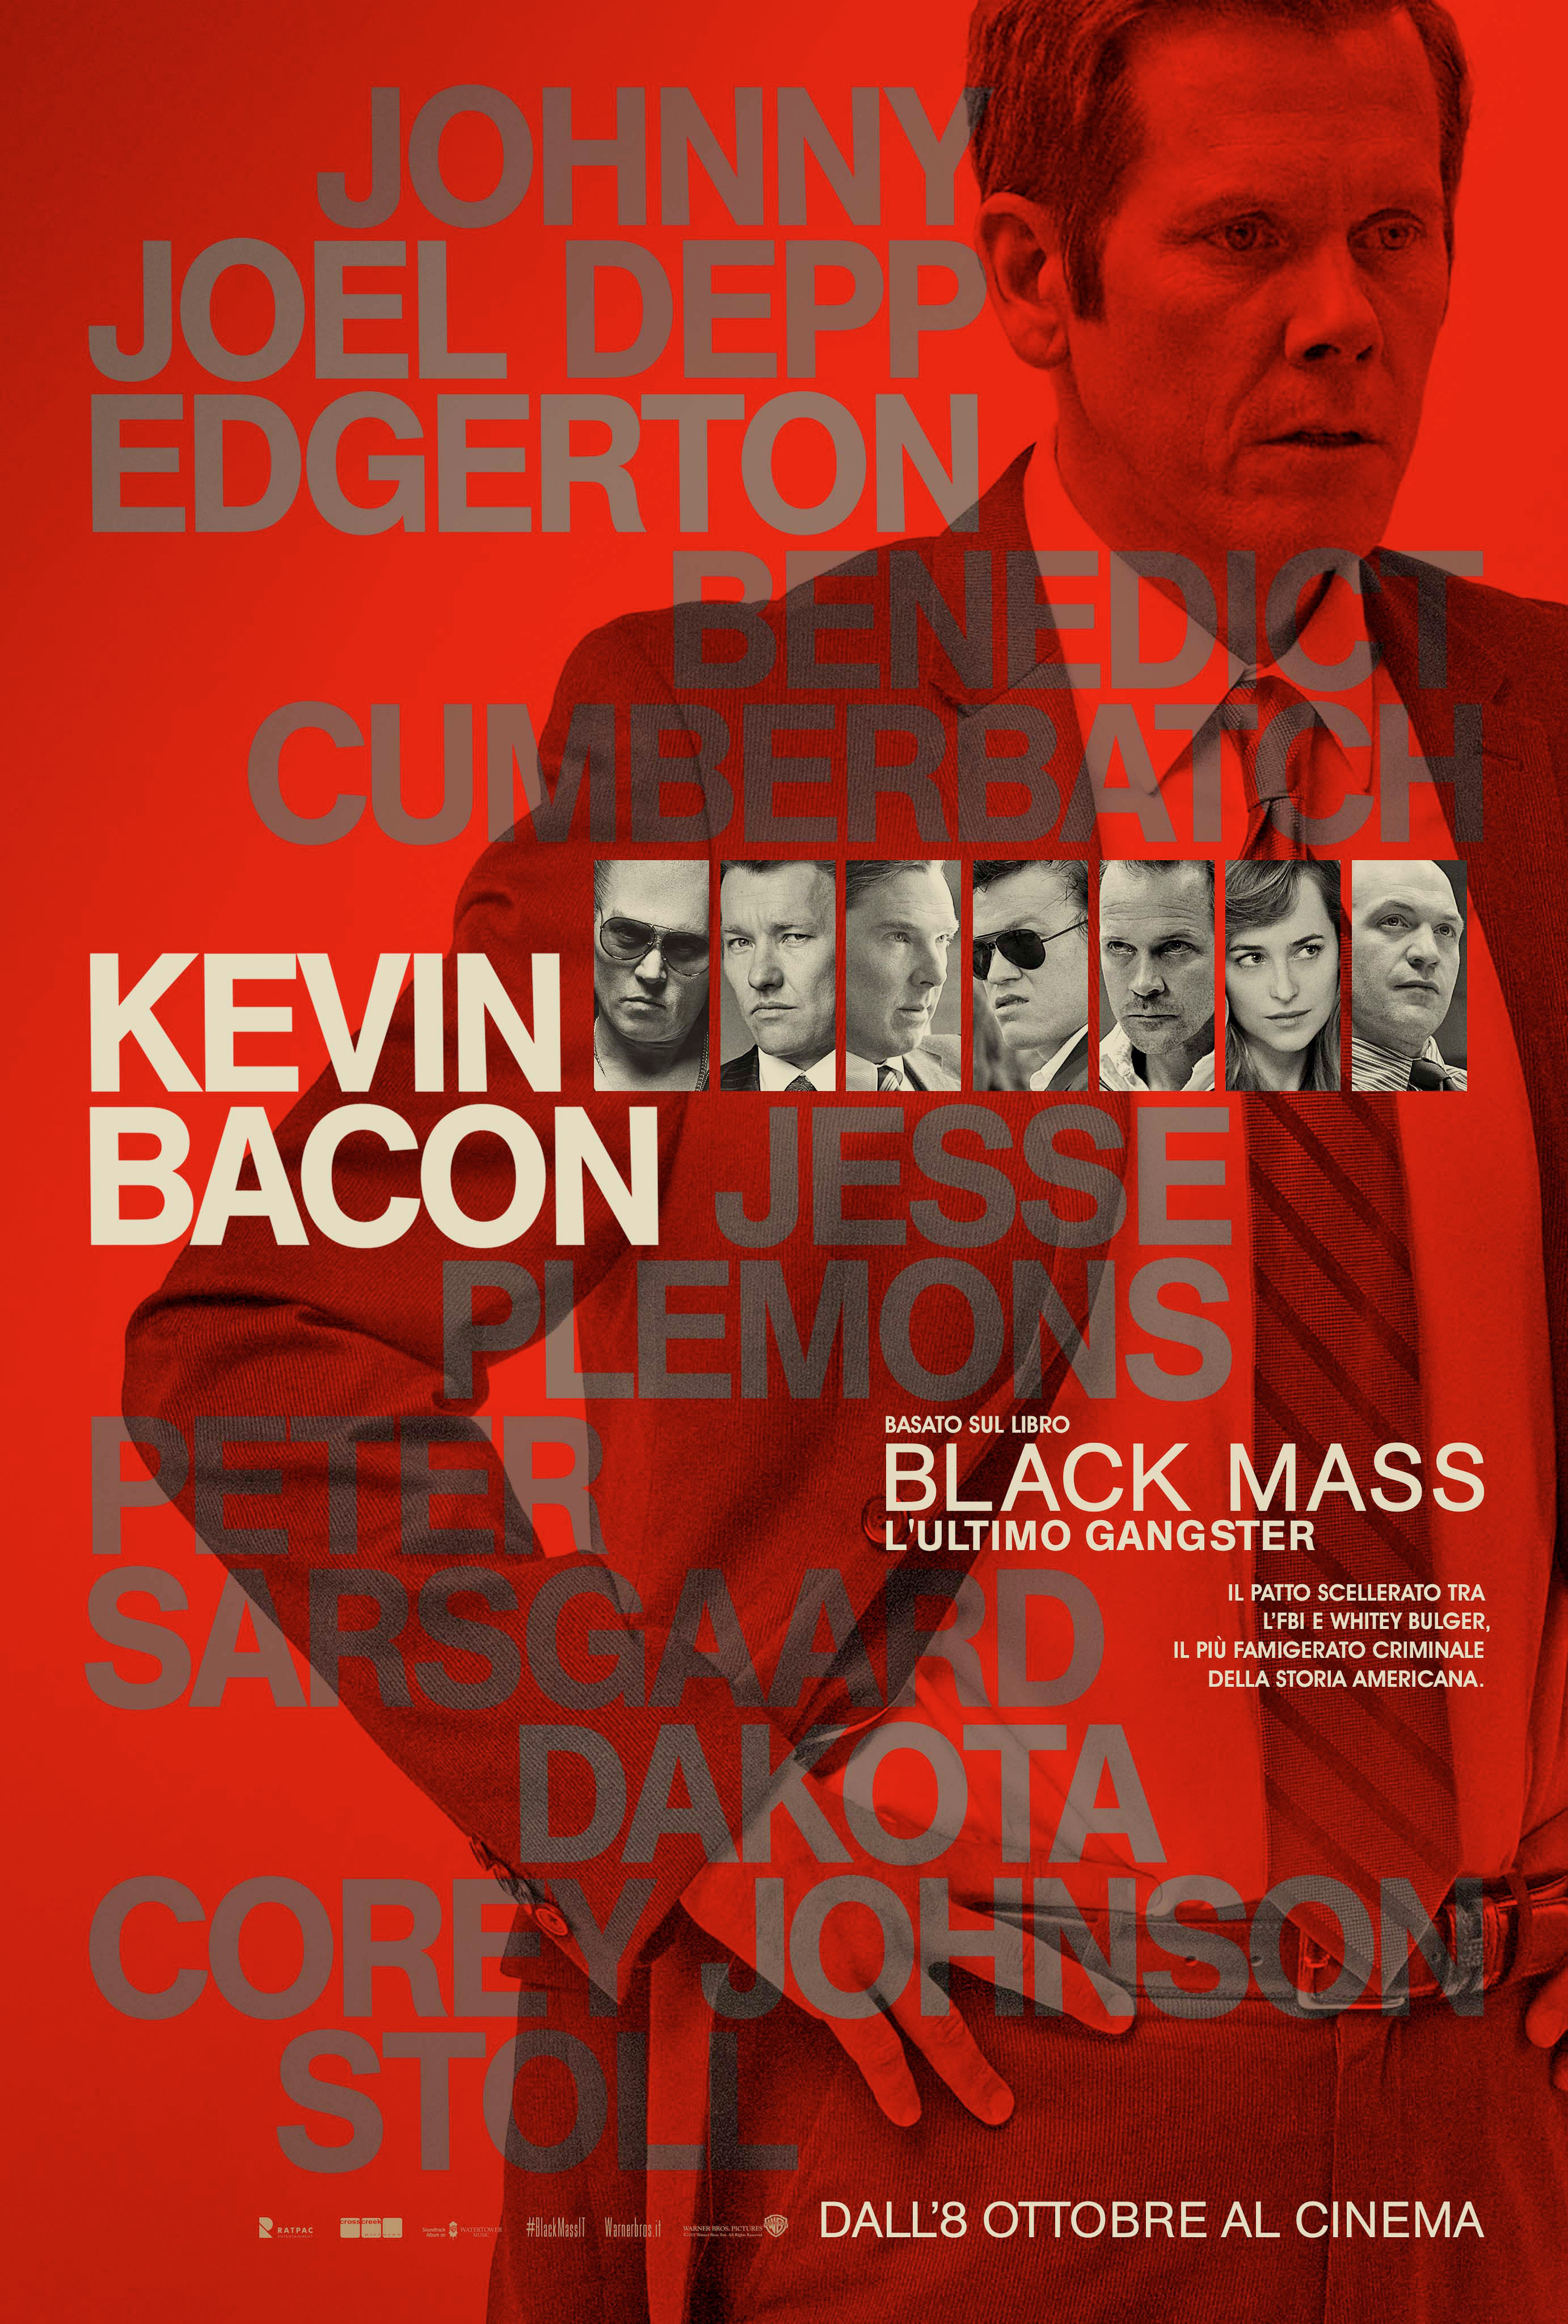 Black Mass - L'ultimo gangster: il character poster di Kevin Bacon